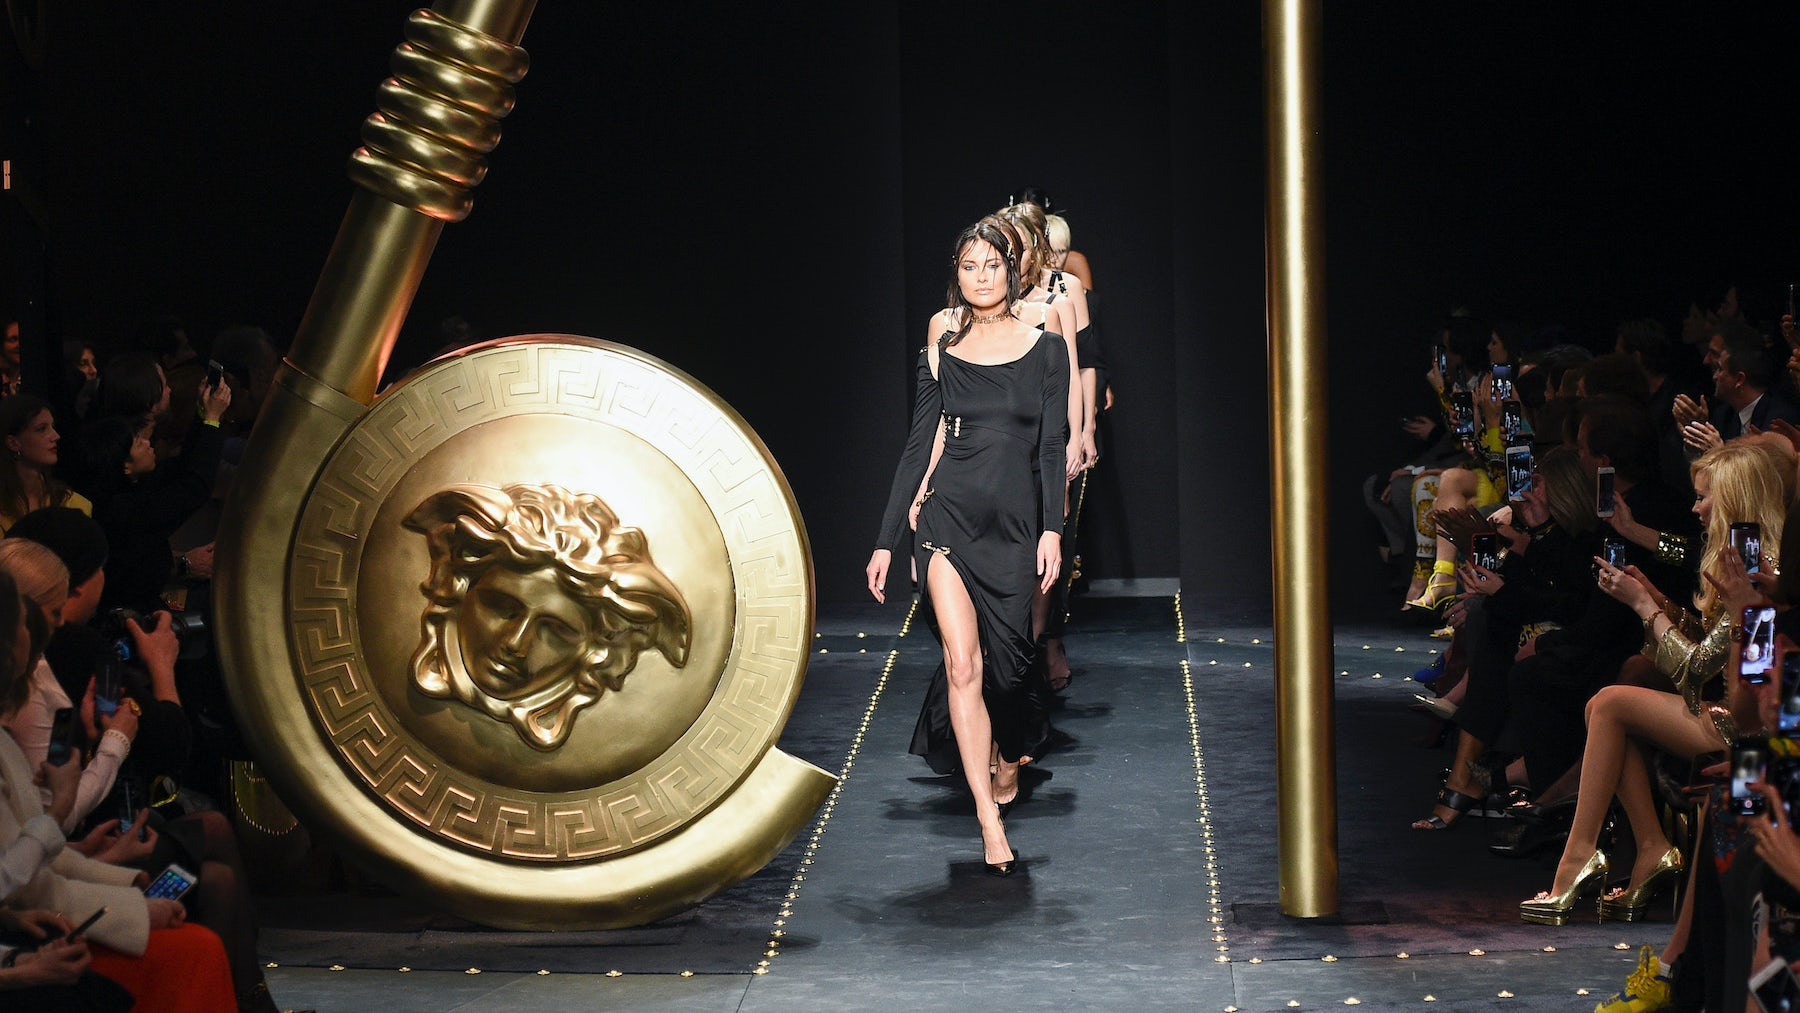 The Plan to Turn Versace and Michael Kors Into 'America's LVMH' Begins Now